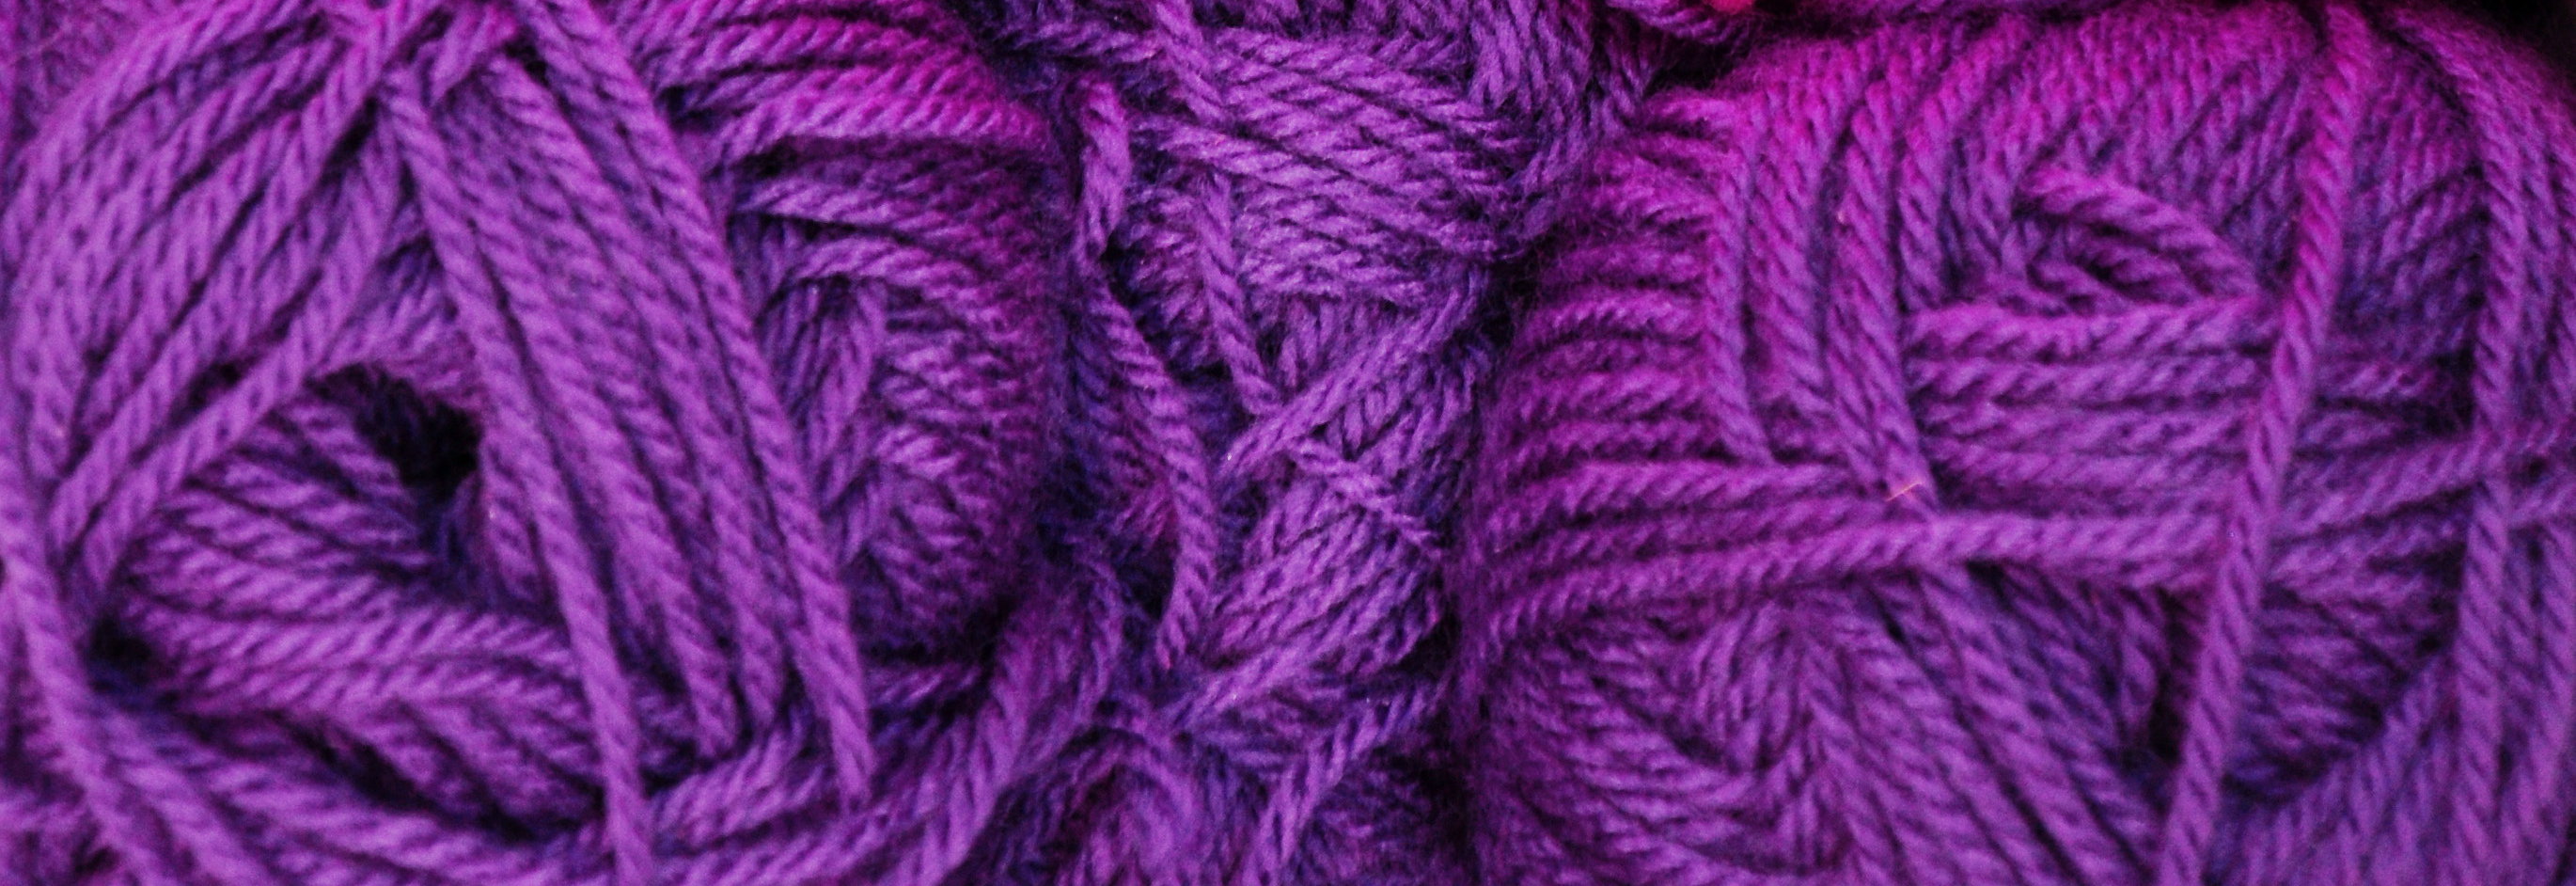 Photo shows close-up shot of balls of purple yarn.